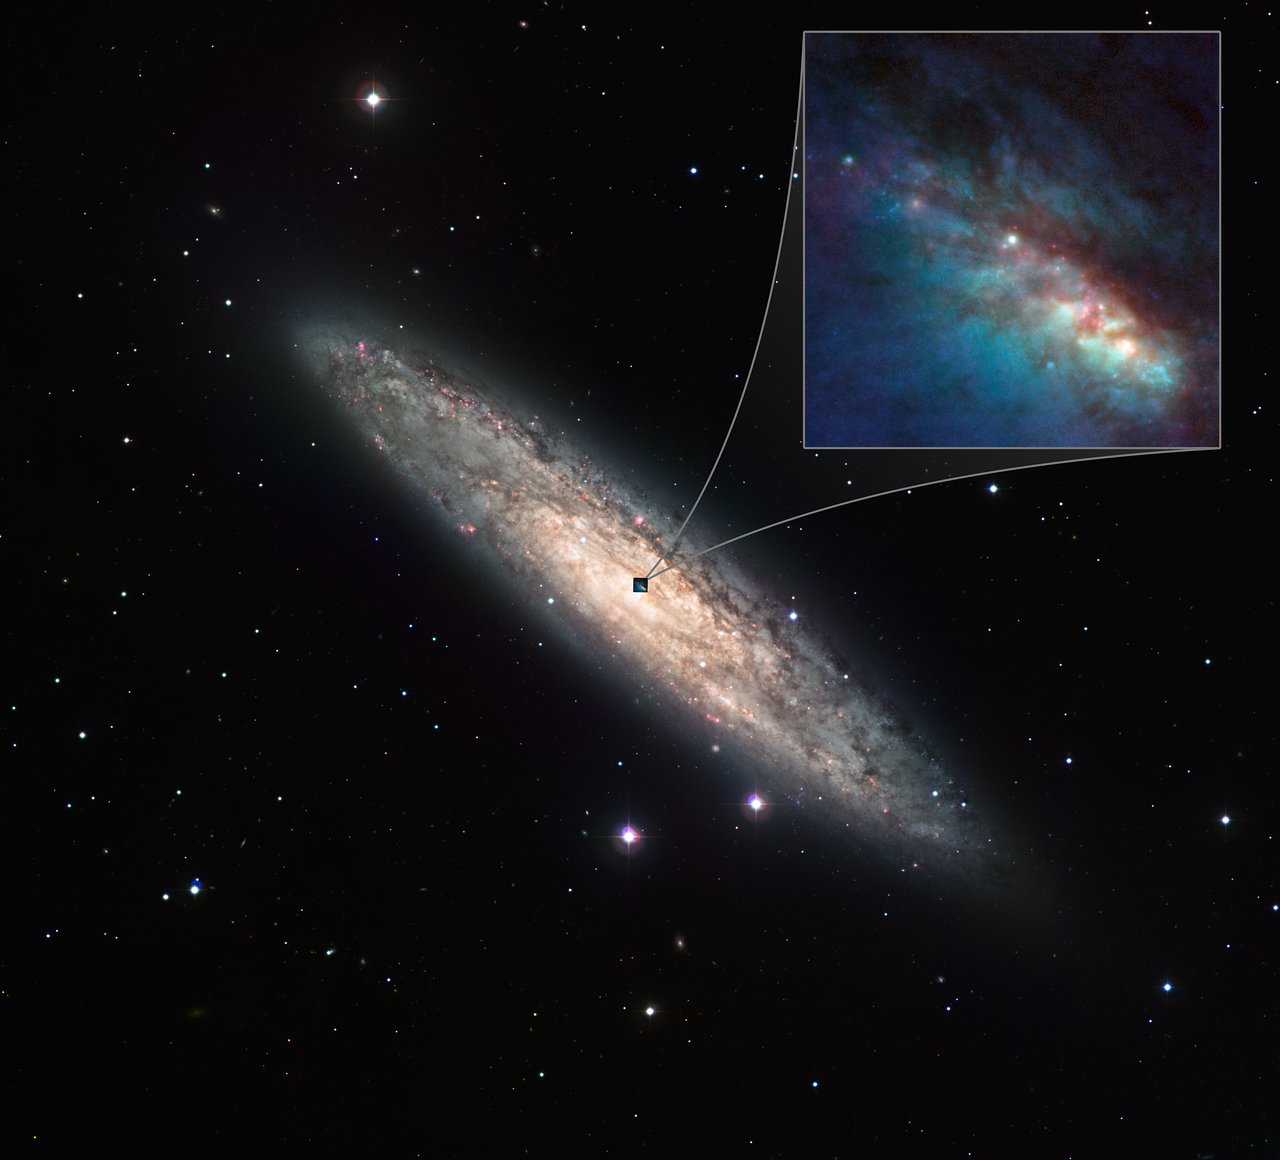 The Starburst Galaxy NGC 253